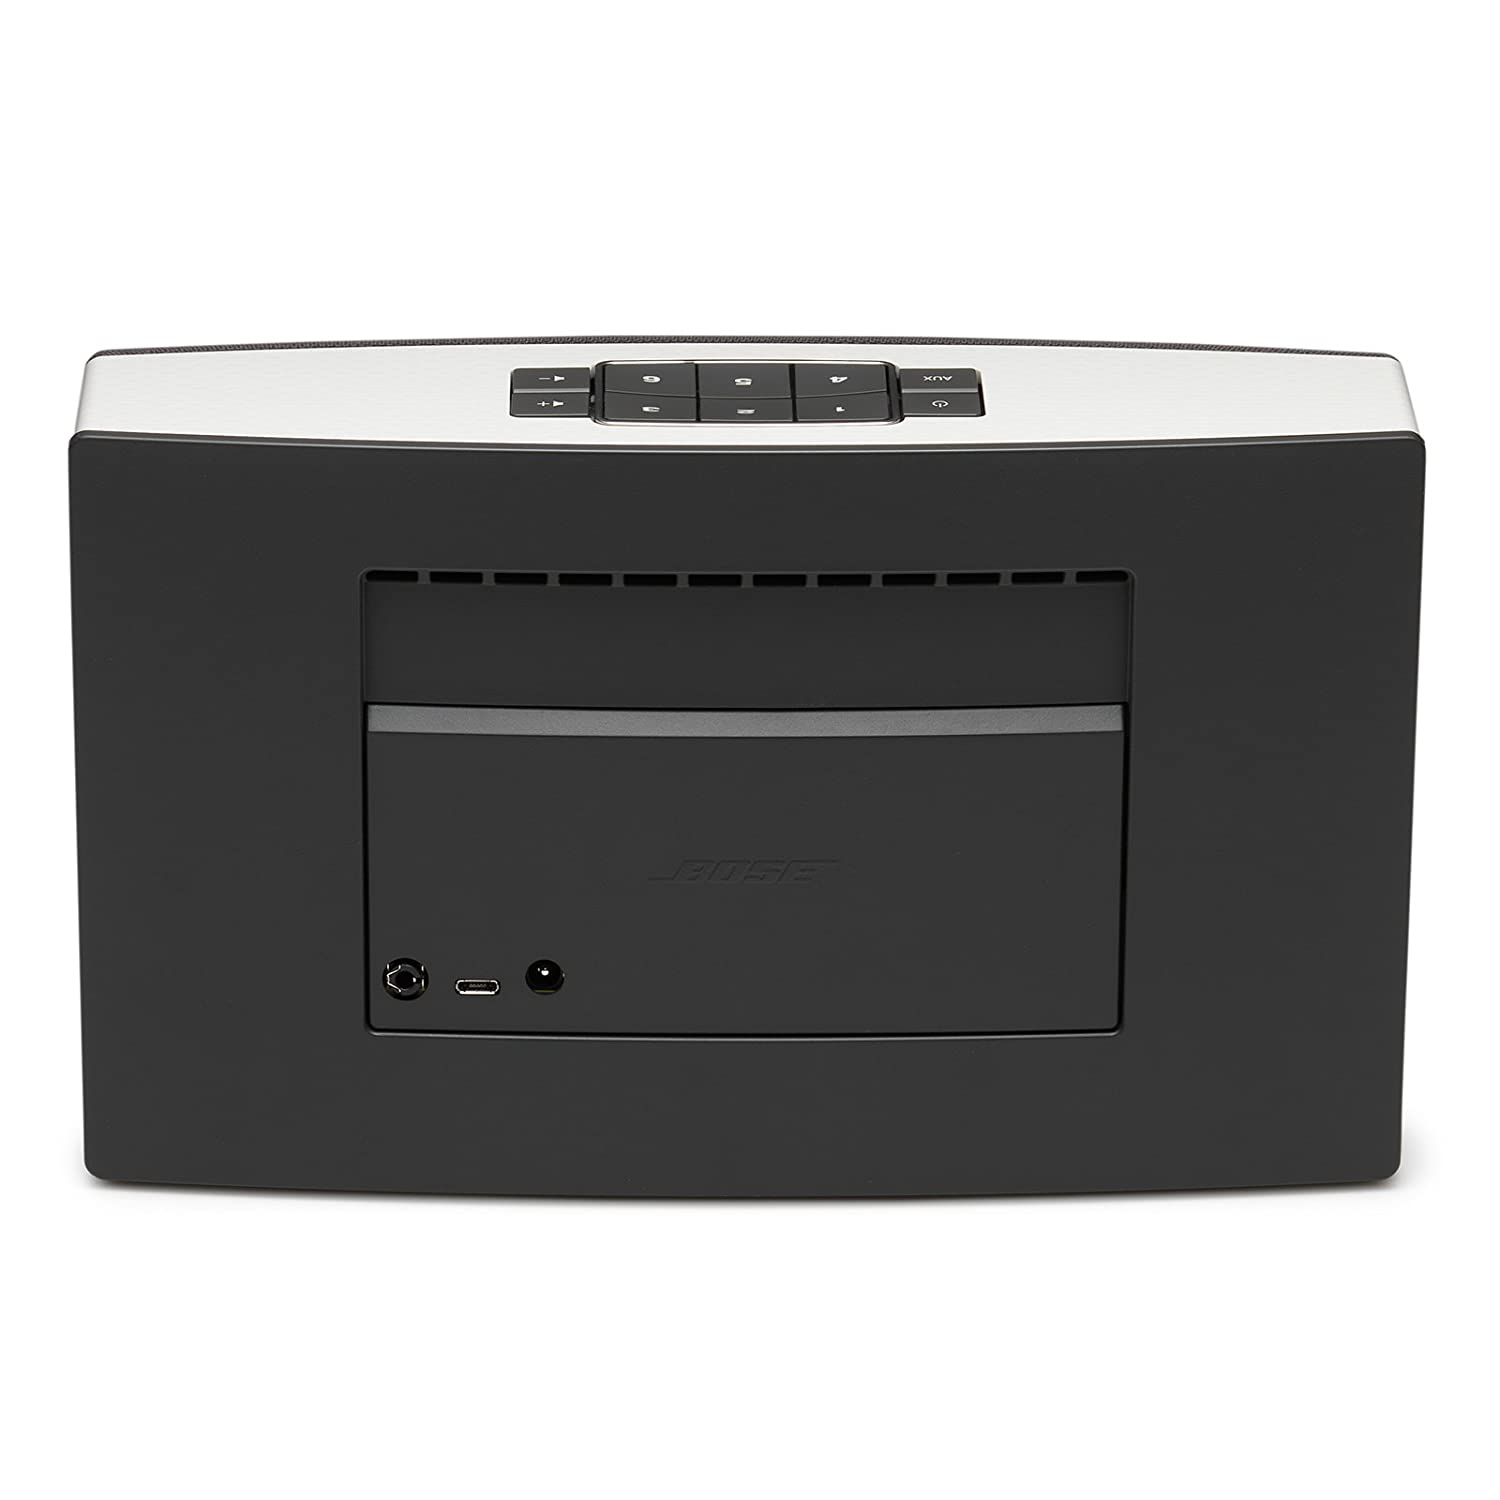 Bose Soundtouch Portable Wireless Music System Trusted Wiring Diagram Sounddock Amazon Com Series Ii For Ipod